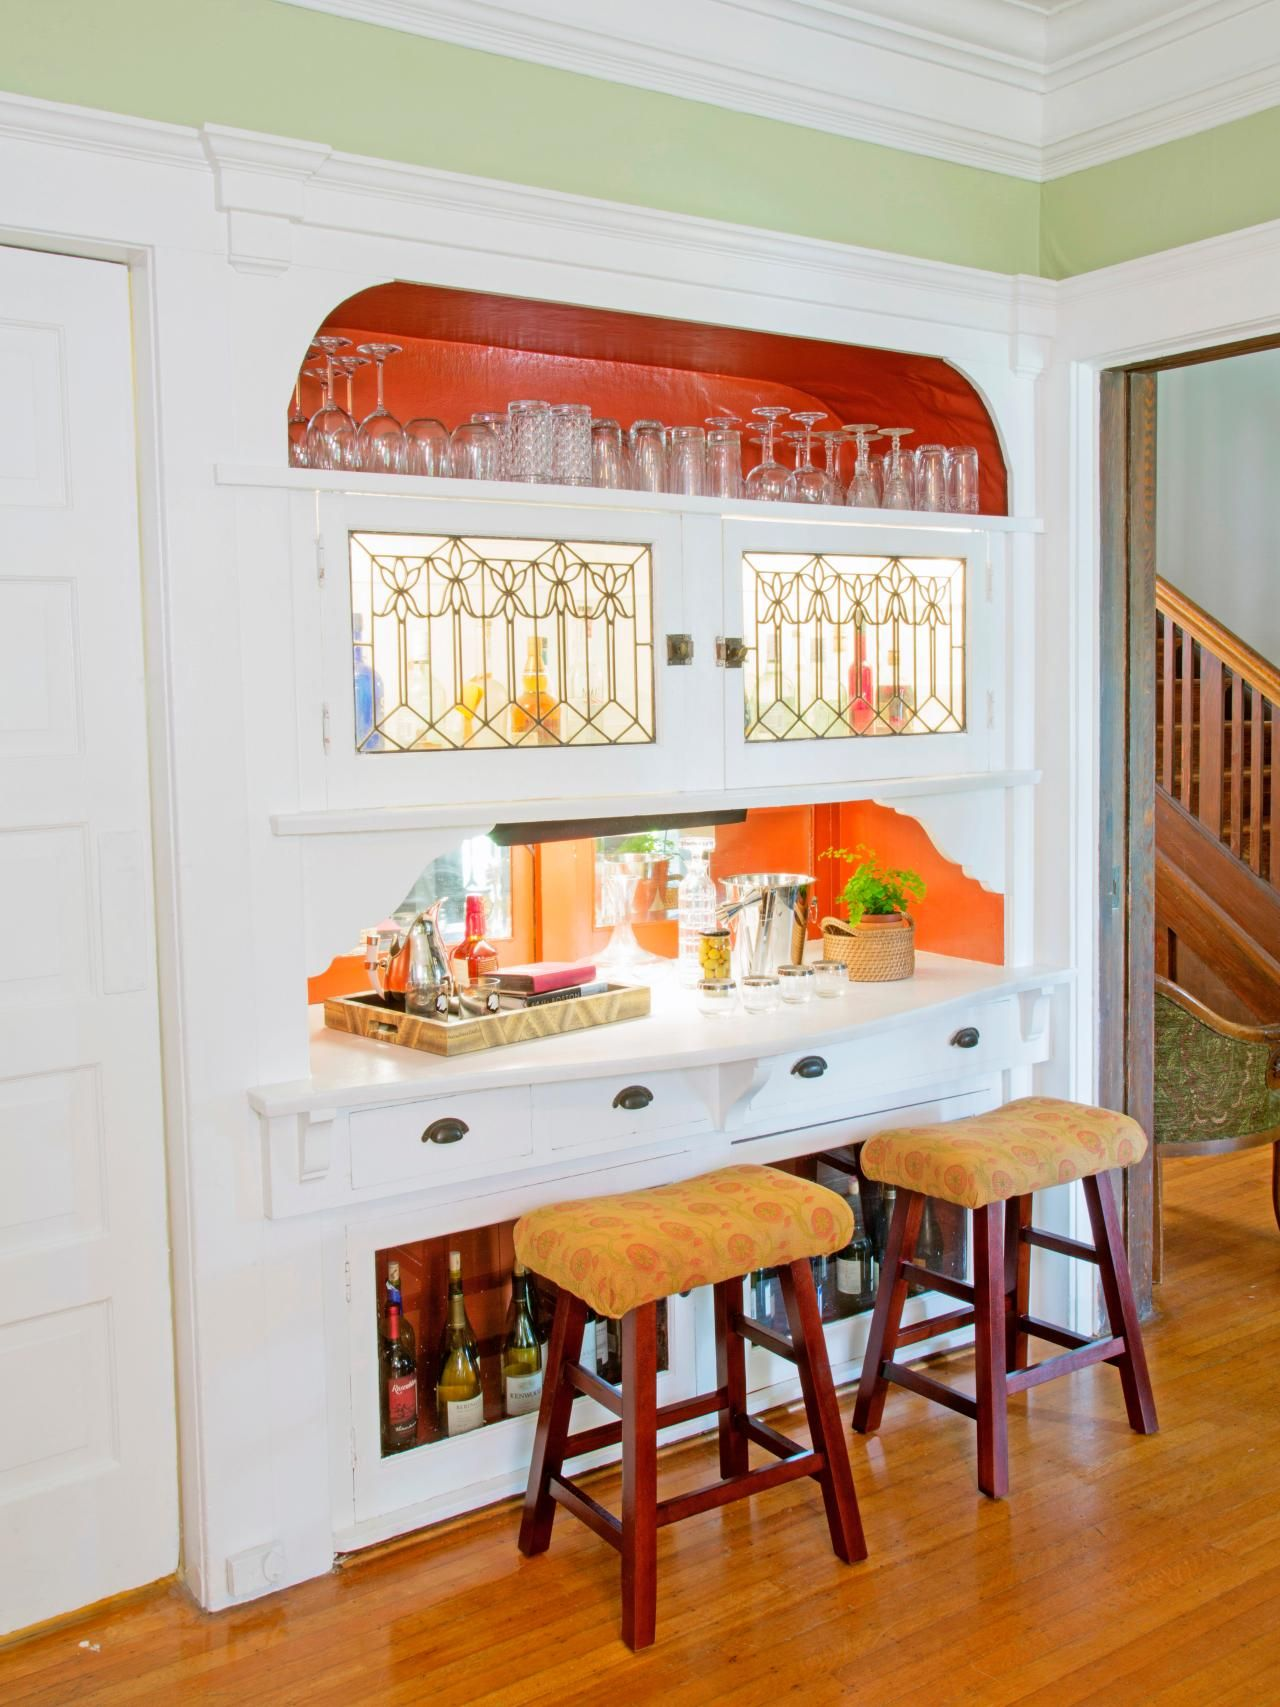 Pin by Nadia Powell on Interior: Private Bar | Pinterest | Bar ...